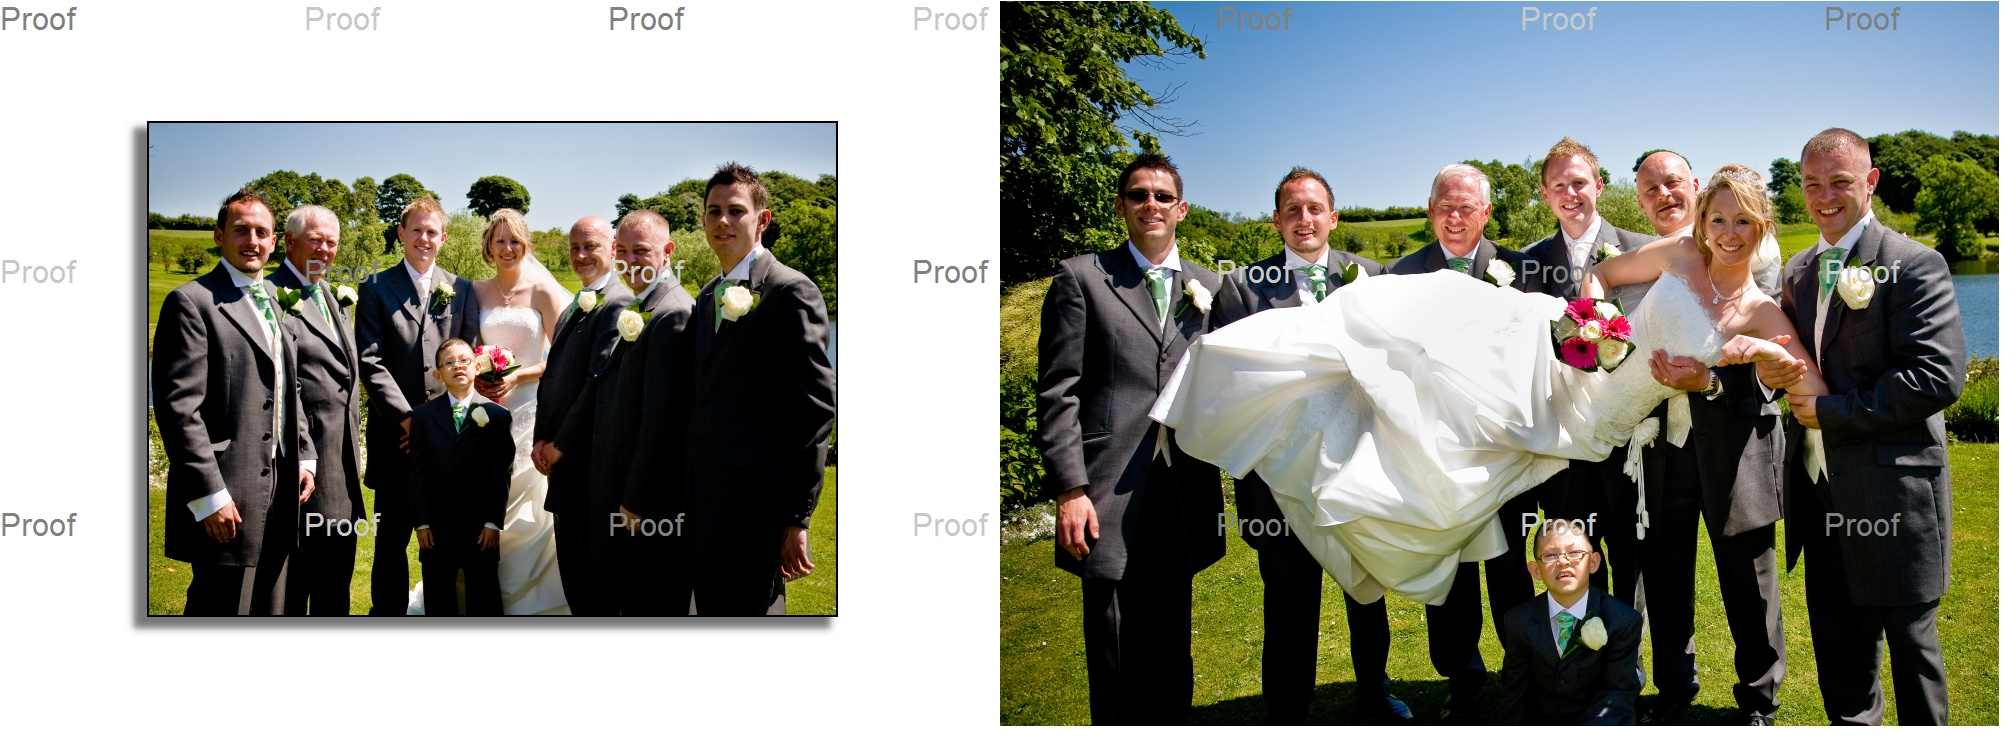 traditional family wedding photos chosen by the couple for their wedding at Waterton Park Hotel